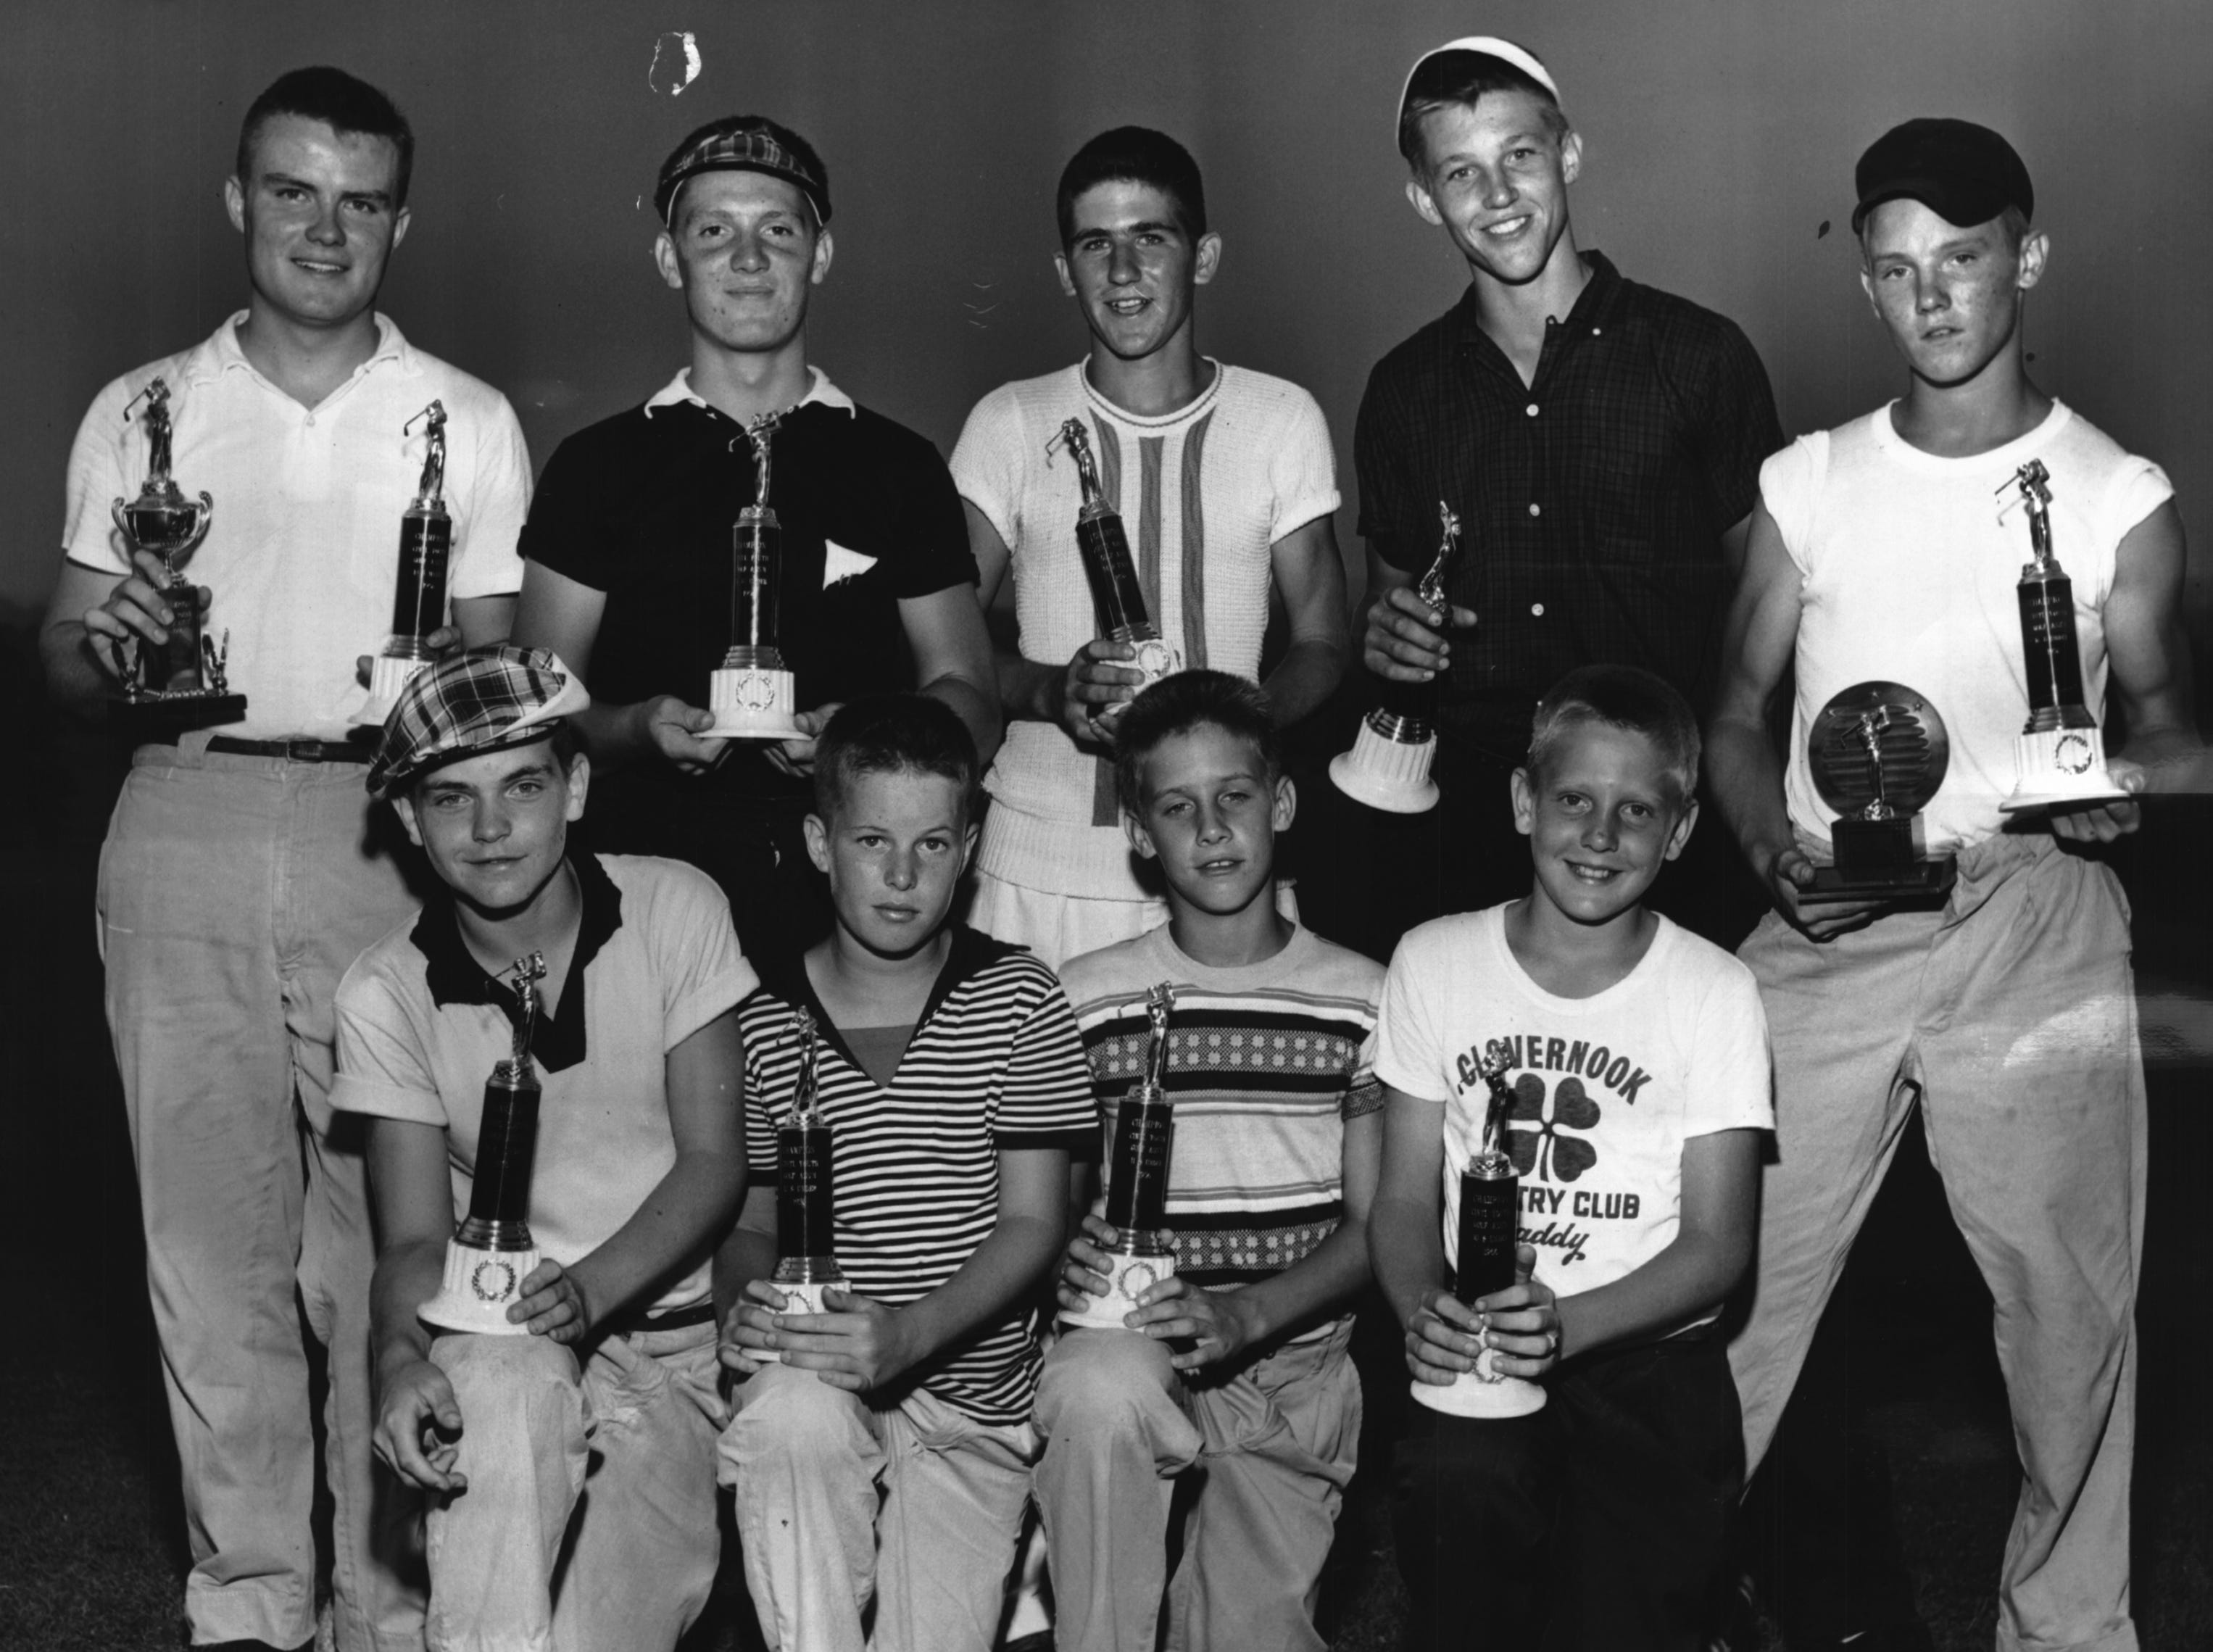 Here's the array of future golf greats who won division  championships in the Youth Golf Association Tournament at Avon Fields. Front row, left to right, Earl Northcutt (13), Greg Wehrman (12), TomKathman (11), Tom Meslow (10-and-under). Back row, left to right, Ed Heimann (18), Don Stringfield (15), Tom Dreyer (14), Roland Wierwille (17) and Tom Metz (16). Heimann was medalist with a two-under-par 66, Metz was runner-up with an even par 68.